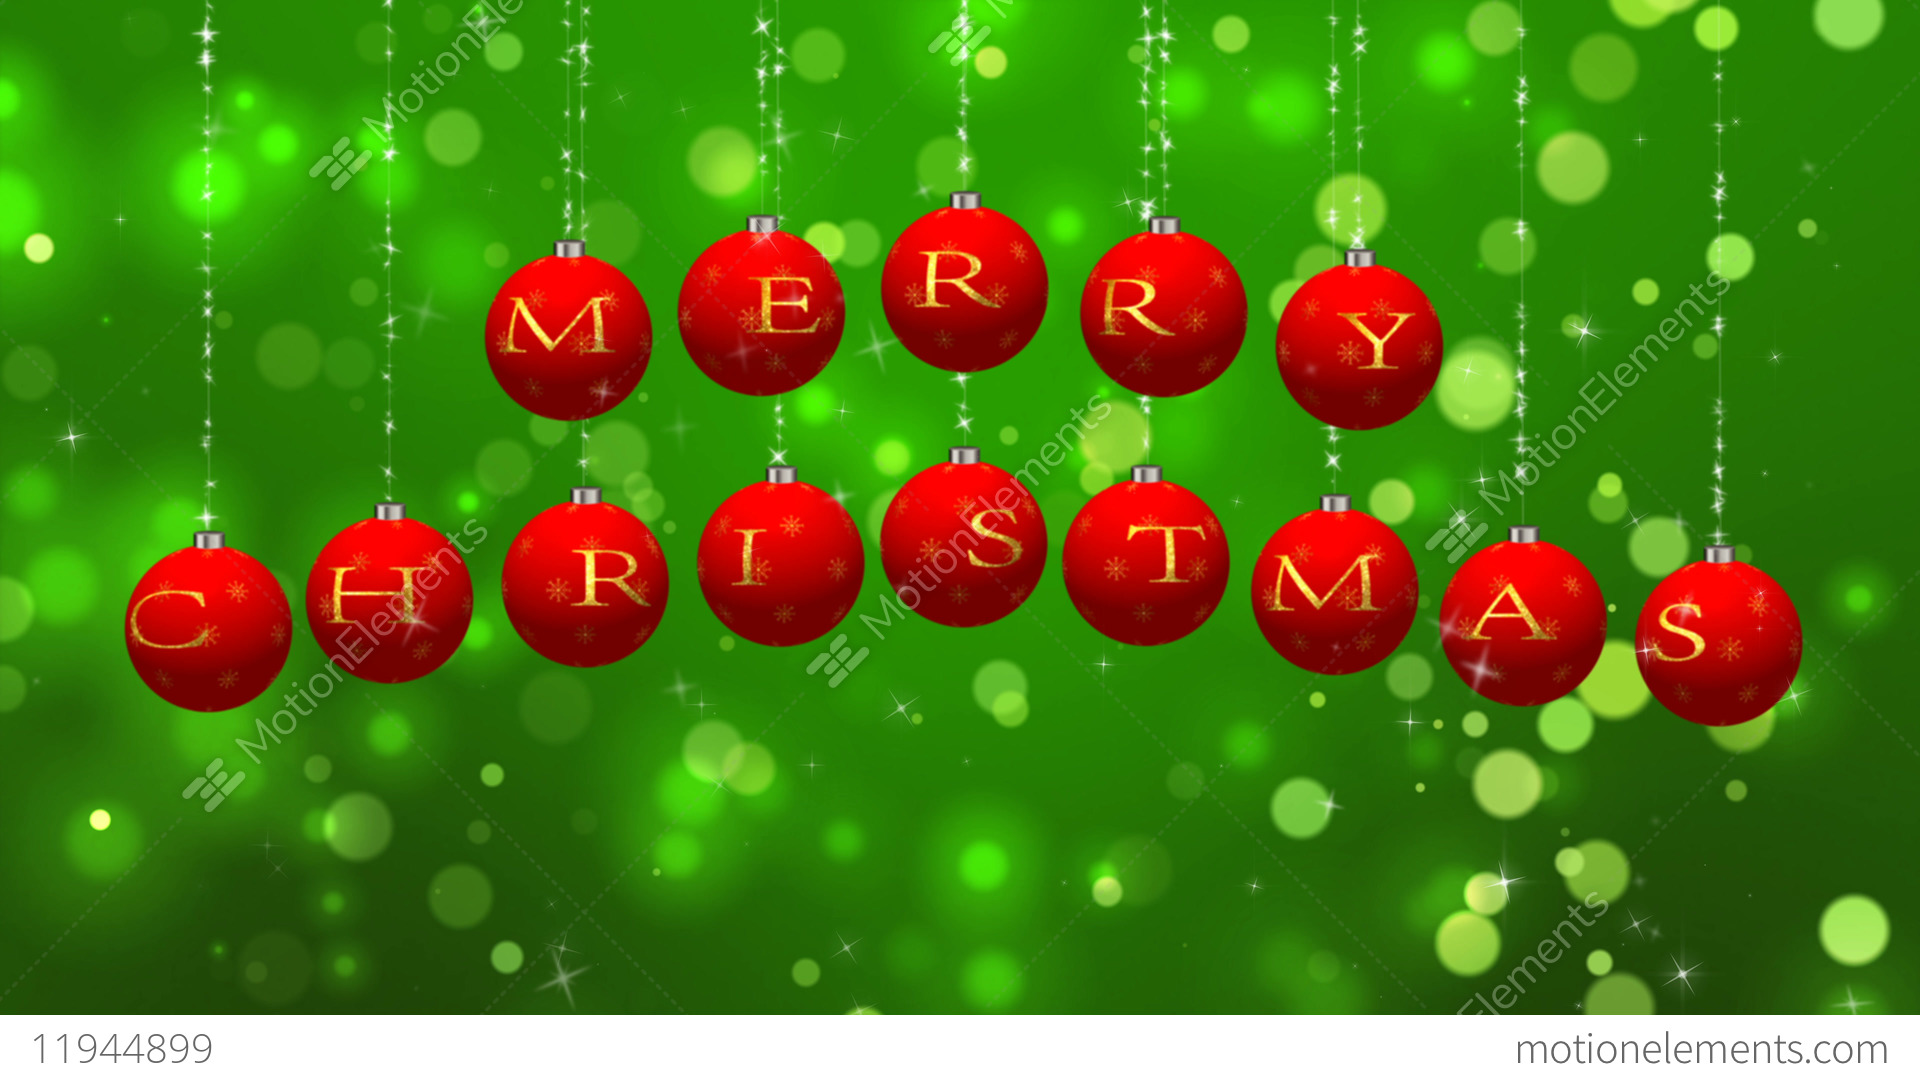 merry christmas wishes on green particles background stock video footage - Christmas Wishes Video